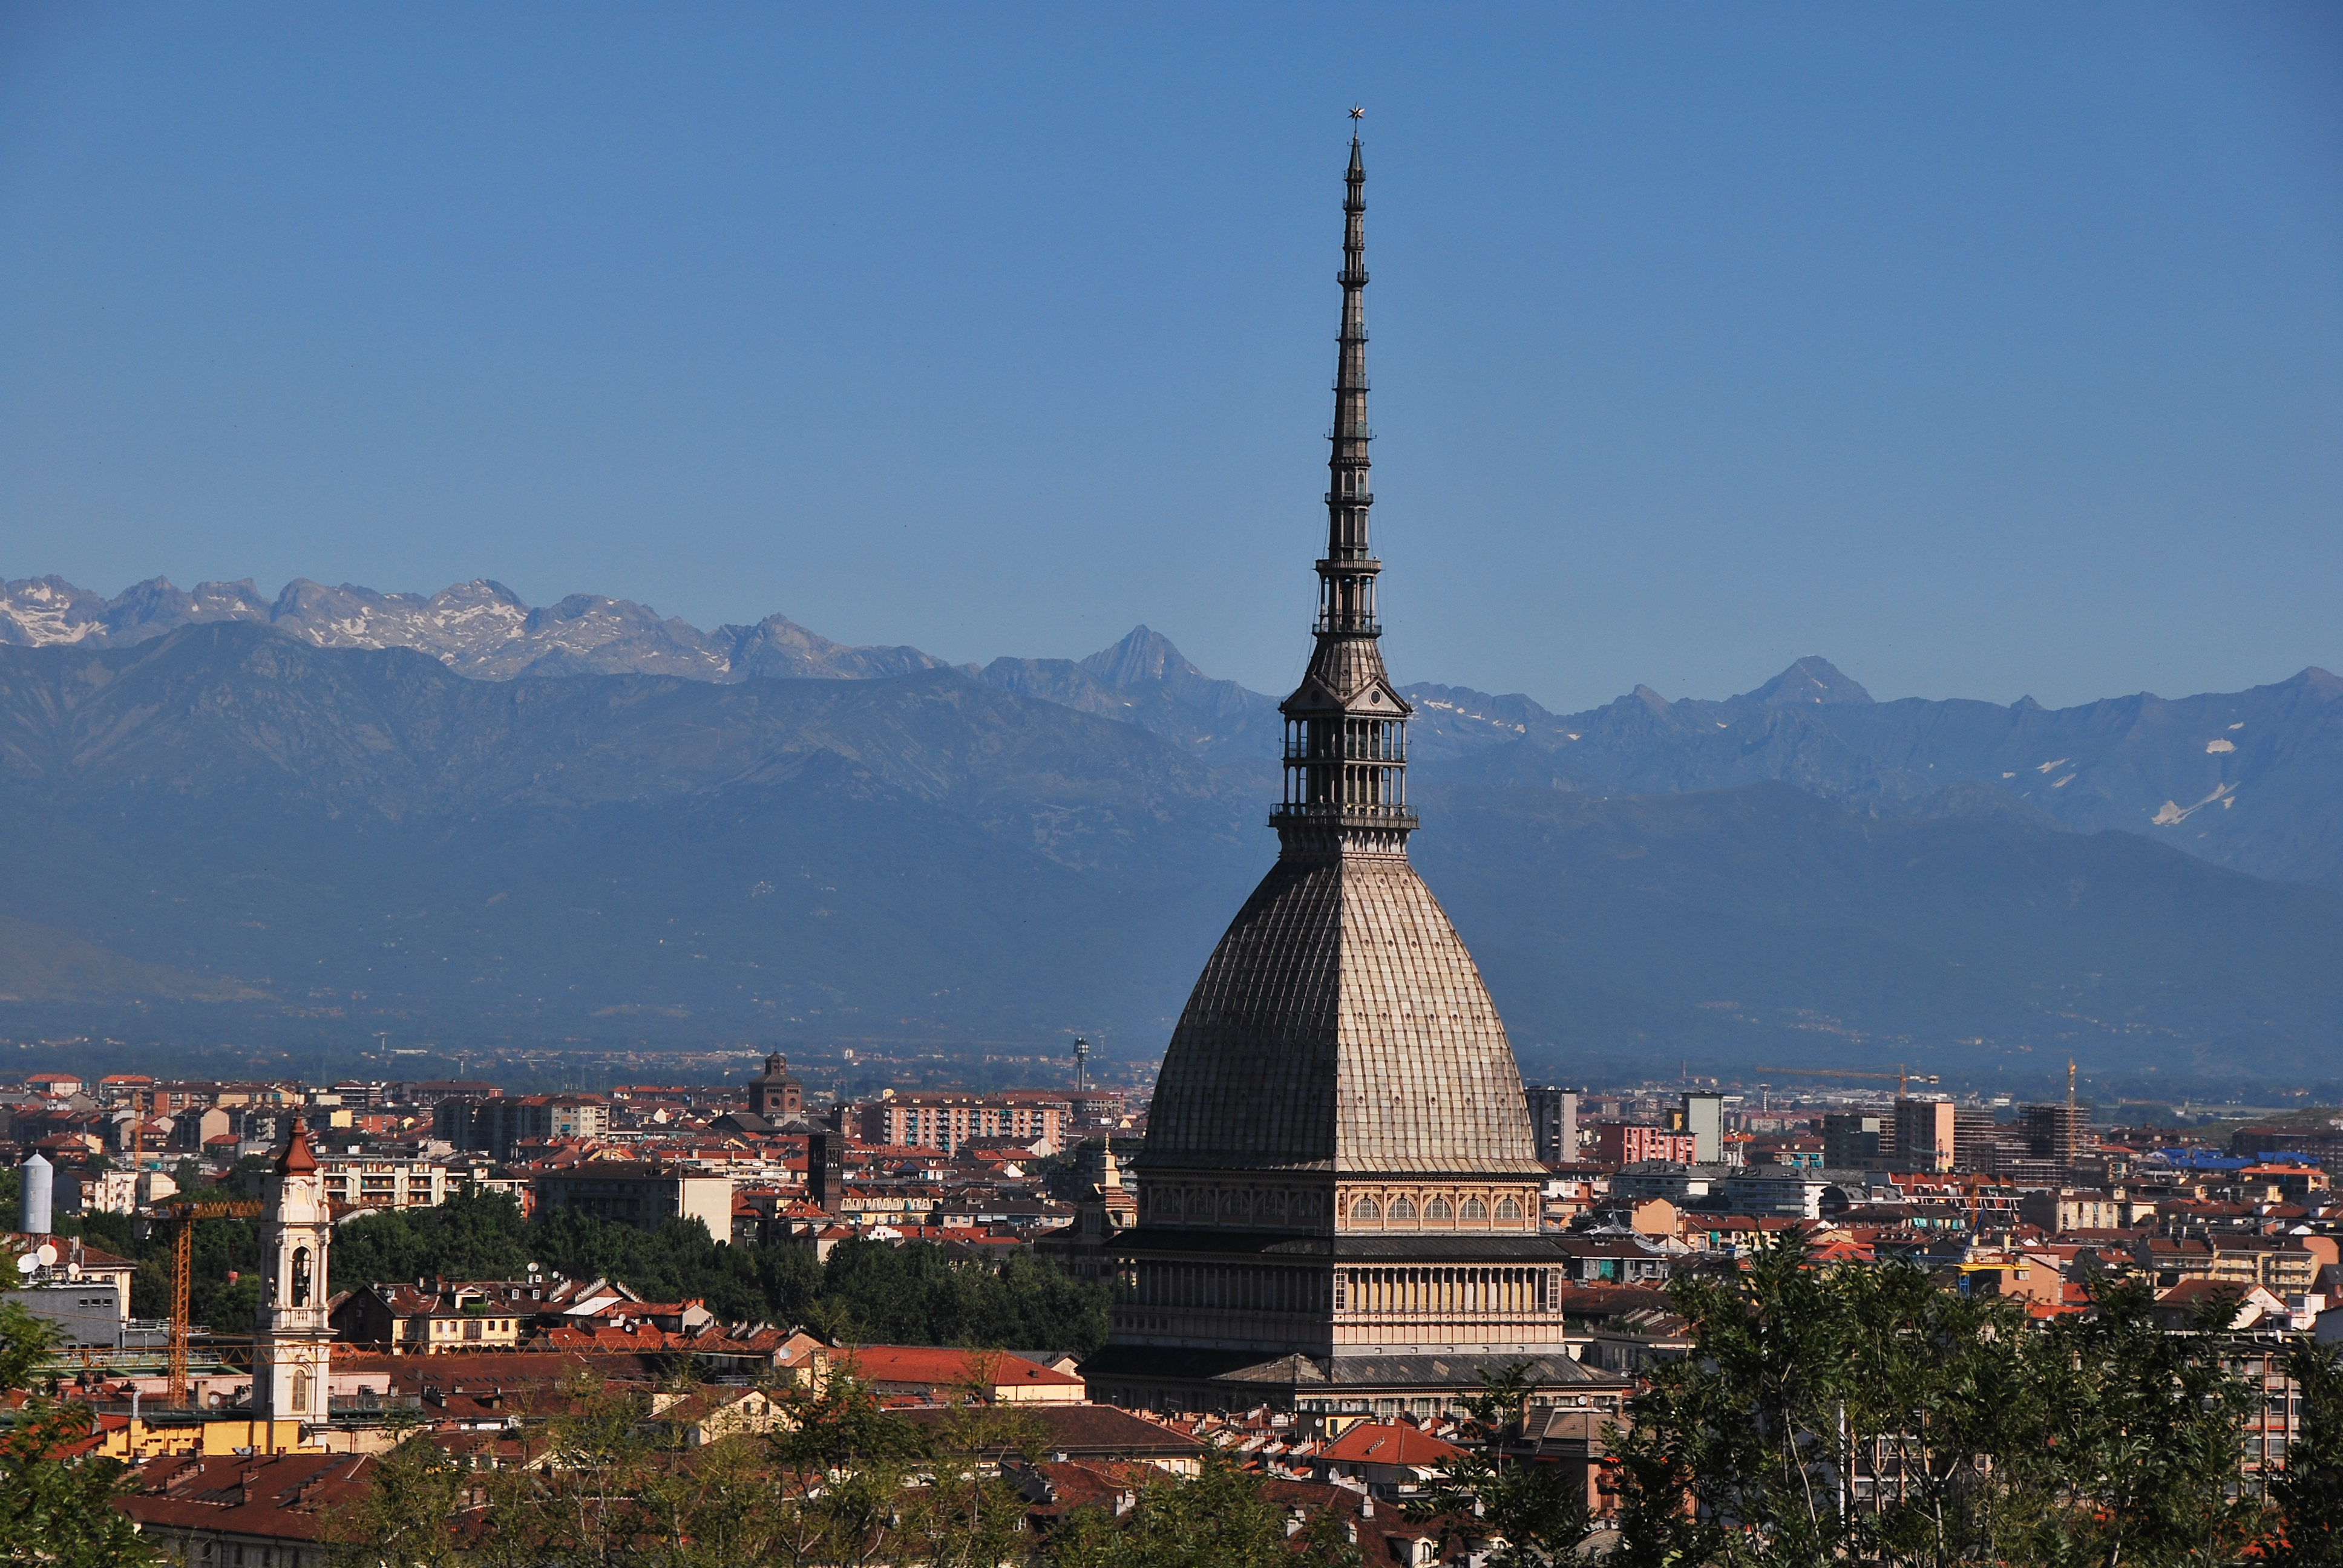 Iconic La Mole, symbol of Turin and home to the national Cinema Museum